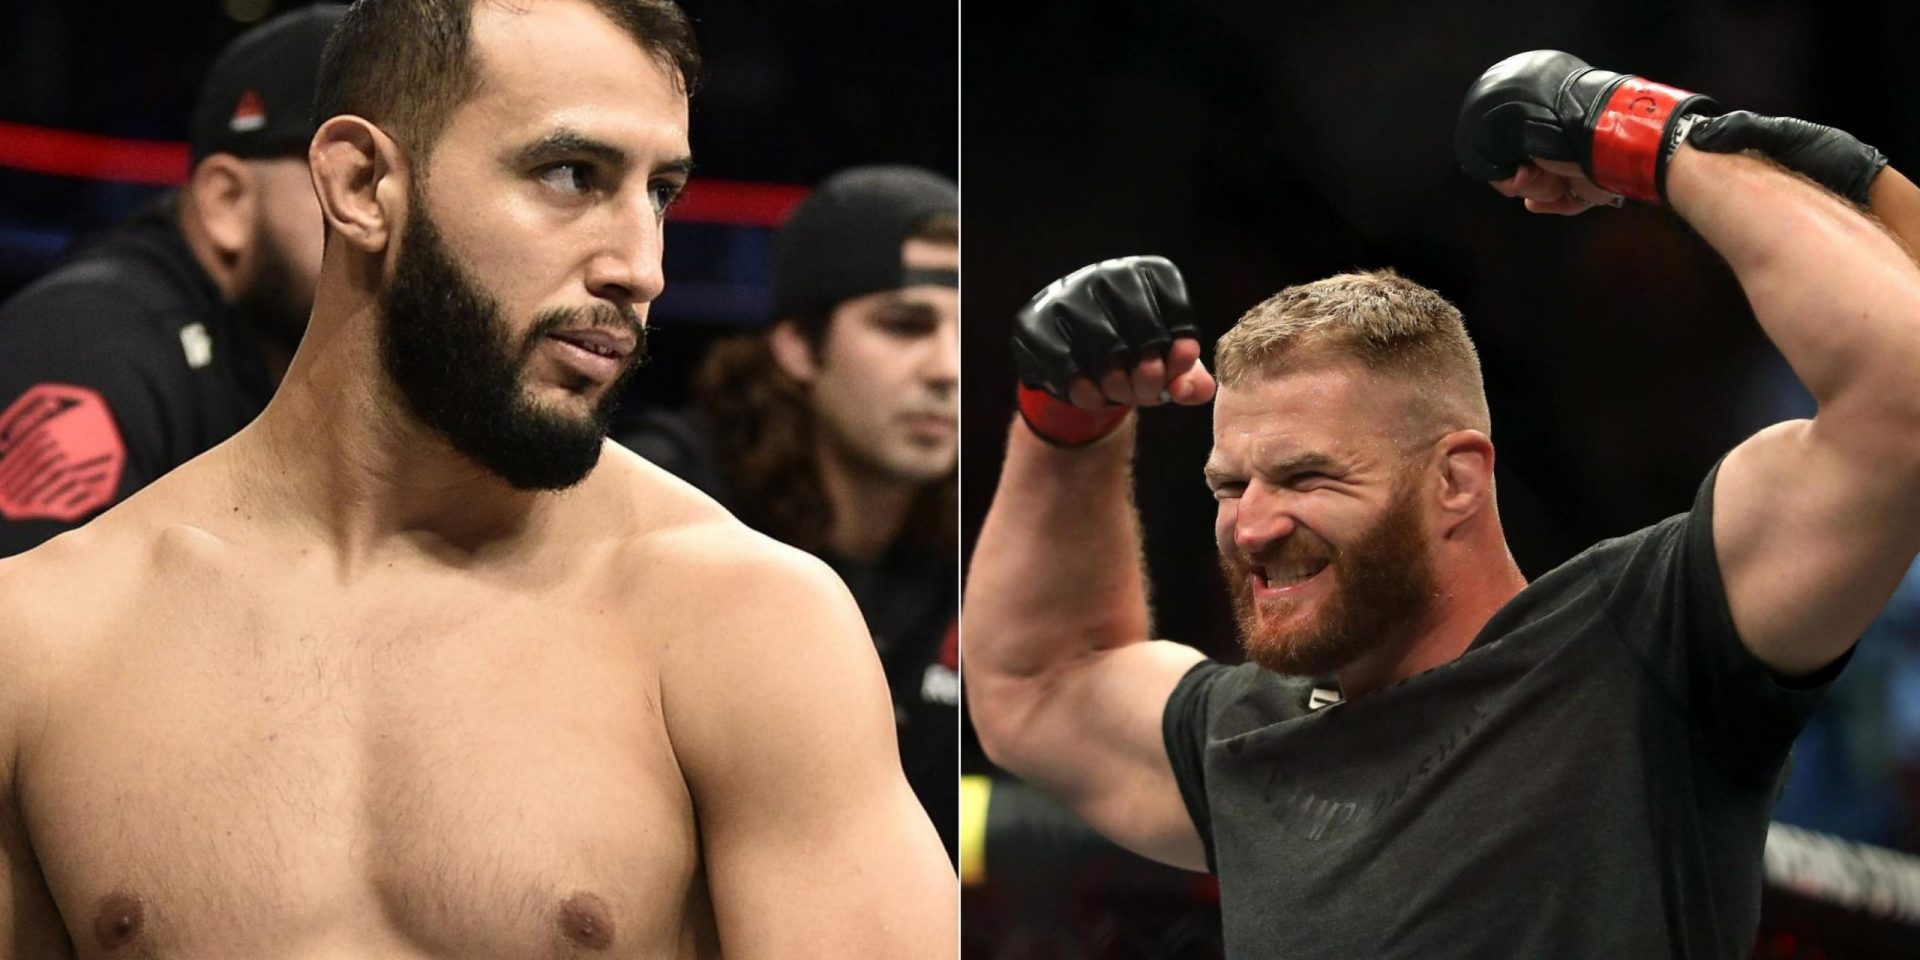 Jan Blachowicz plans on finishing Reyes, to prove he is better than Jon Jones - Jan Blachowicz